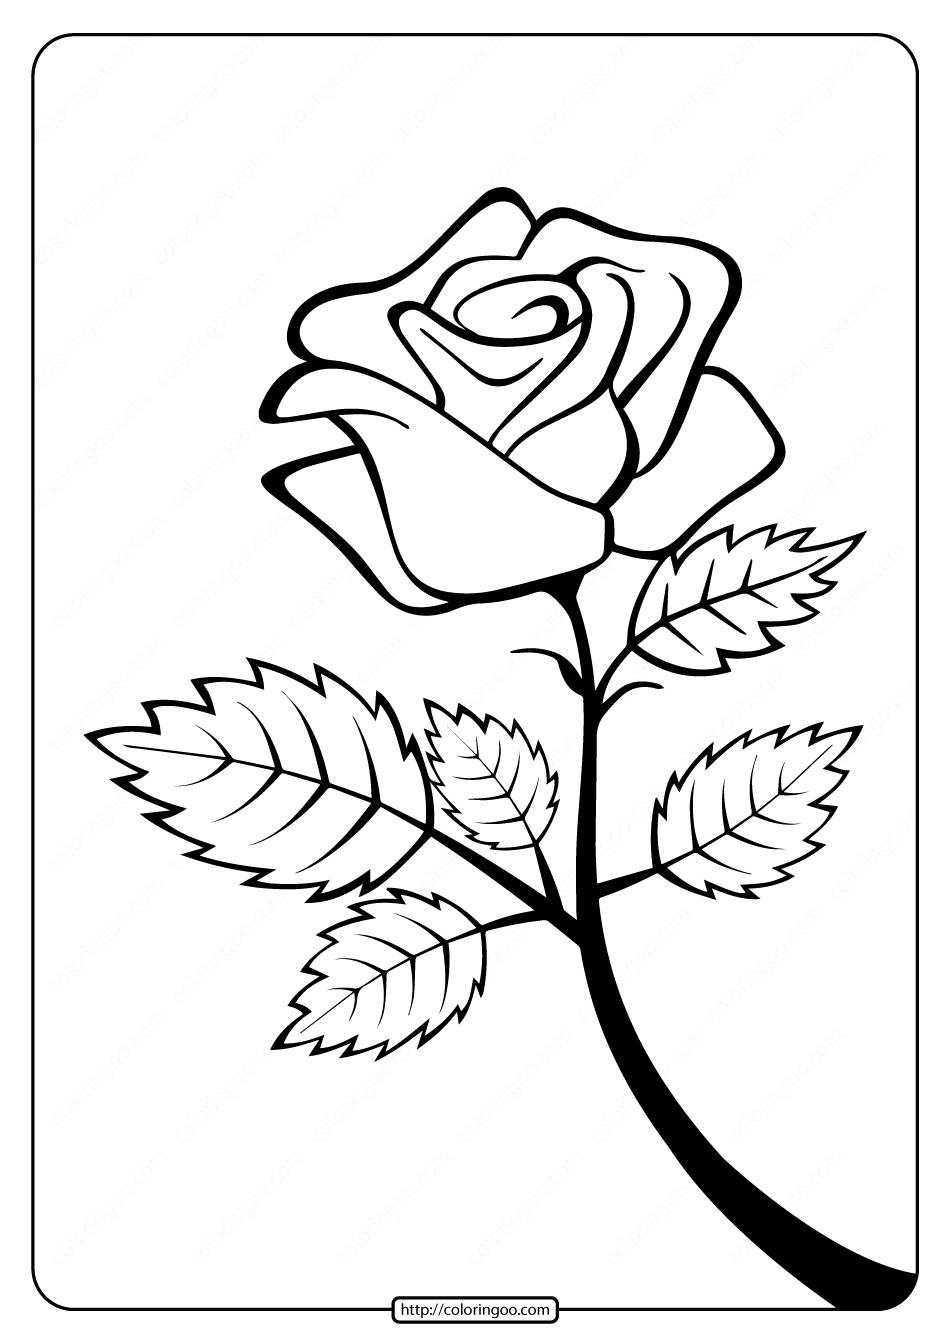 picture of a rose to color free printable roses coloring pages for kids of rose to color a picture